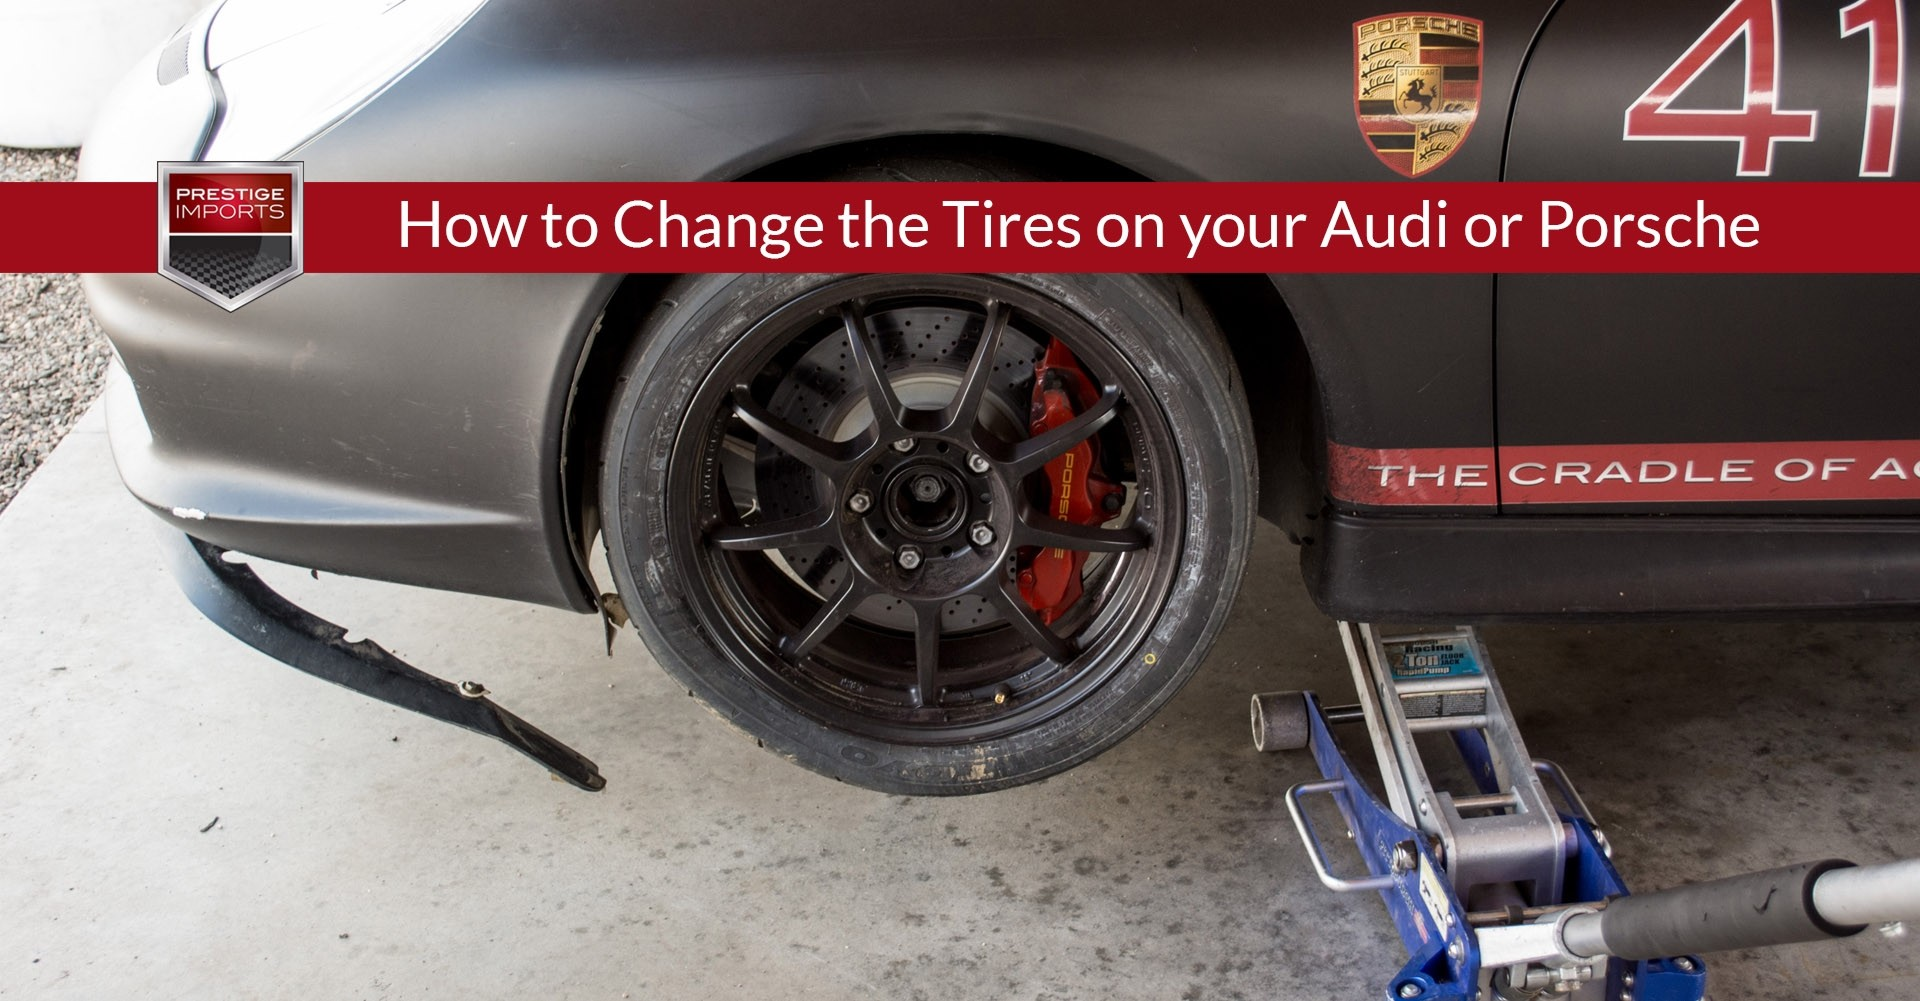 How To Change The Tires On Your Audi Or Porsche Step By